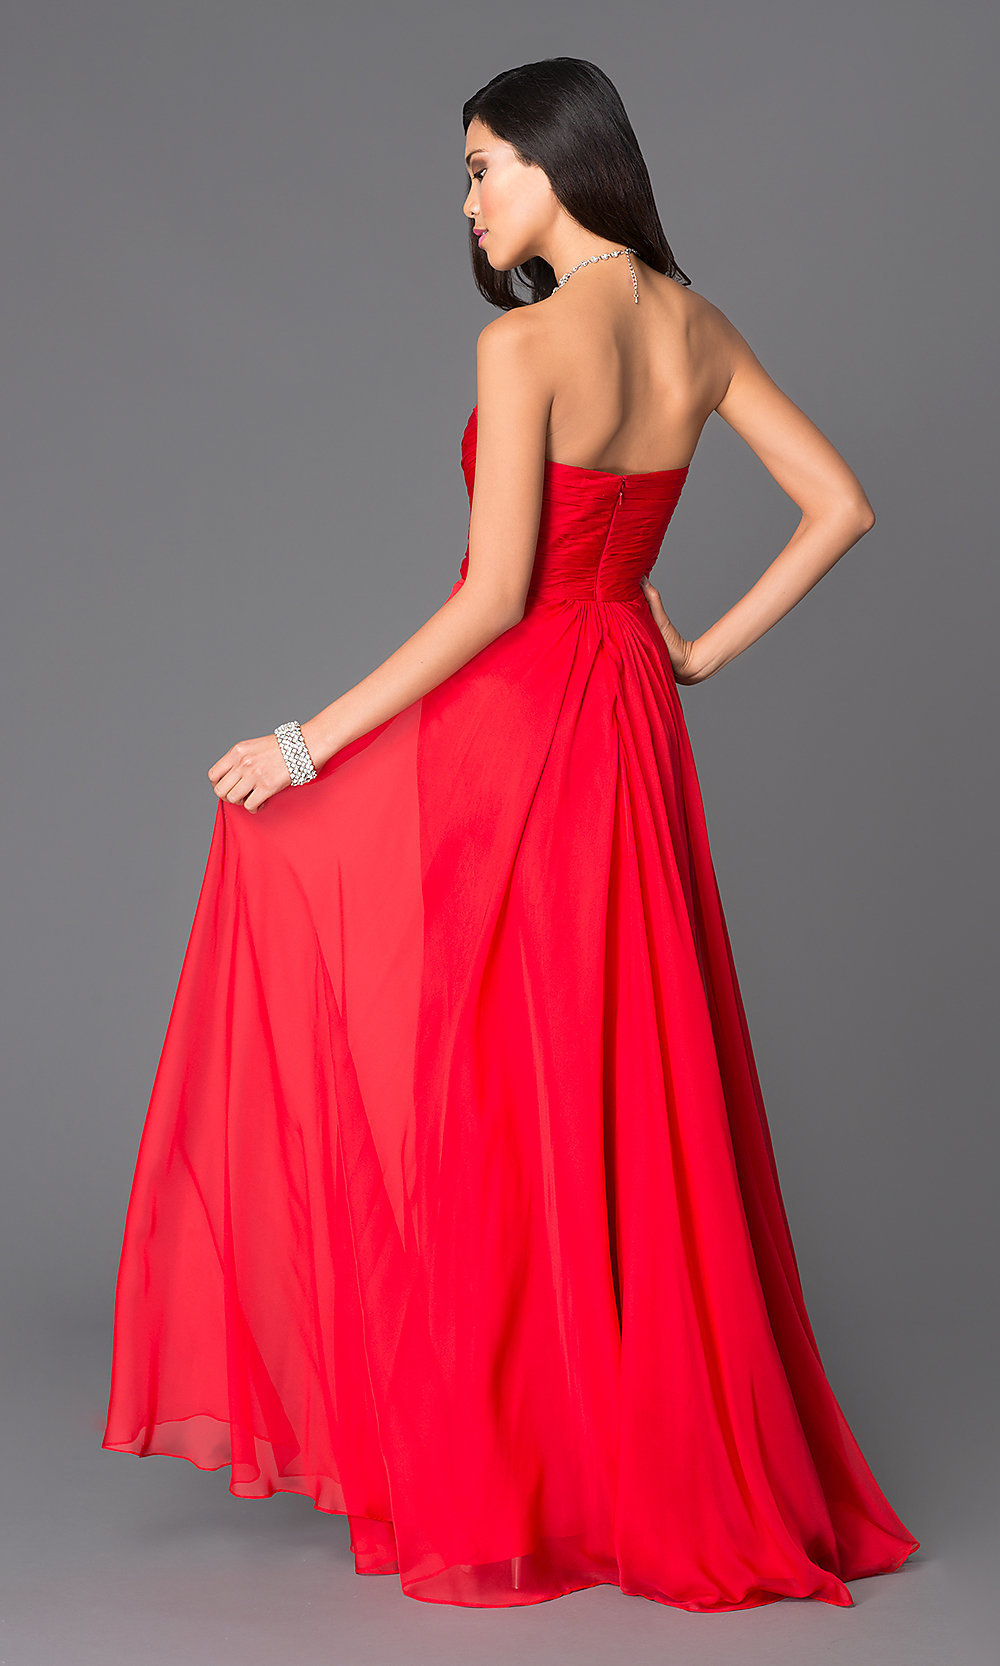 Strapless Red Sweetheart Prom Dress - PromGirl